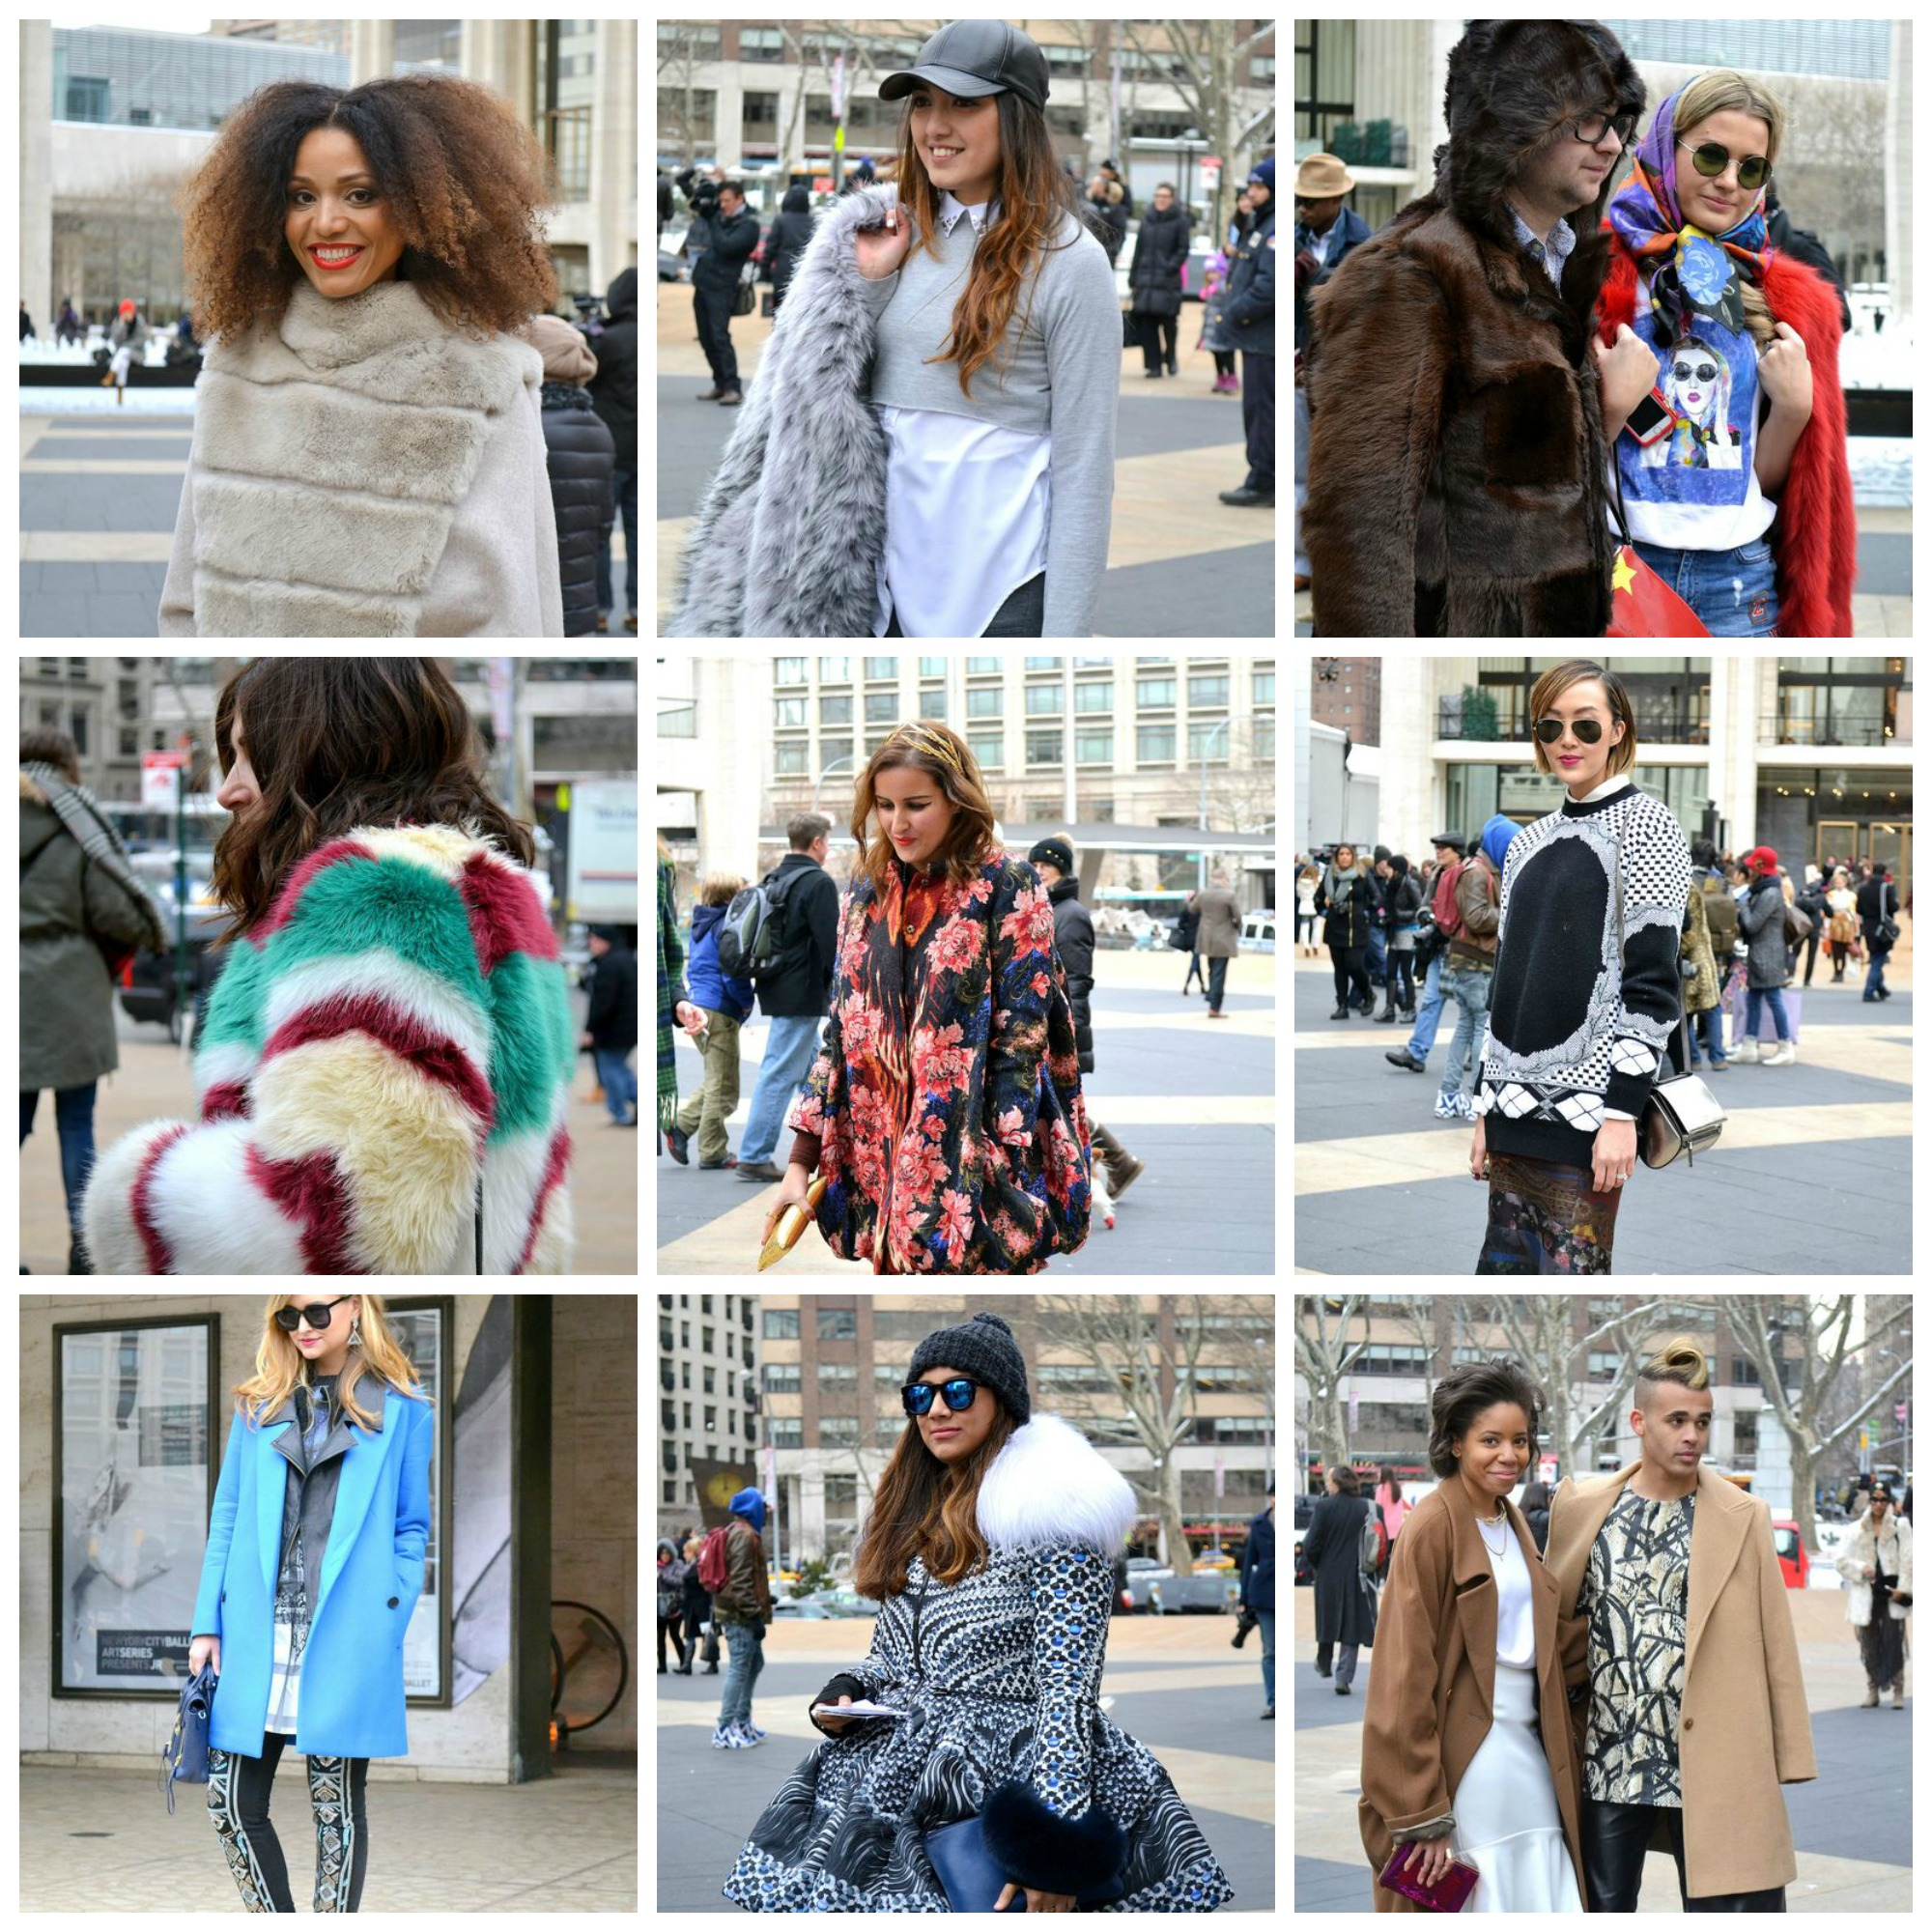 minute-mode-new-york Minute mode NY Streetstyle #11 par Jennie : New York Fashion Week 2014